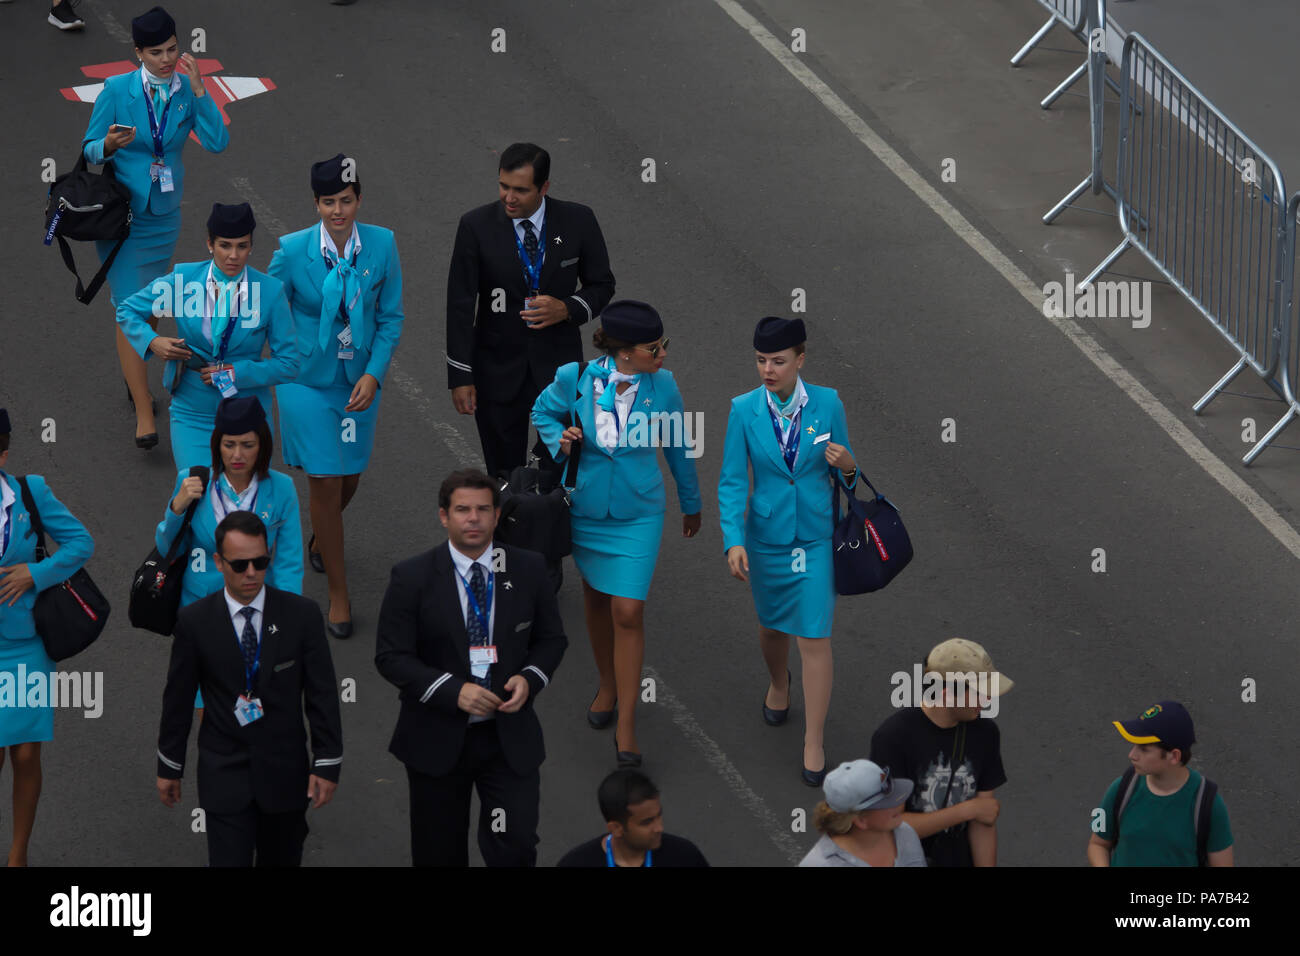 Farnborough,UK,21st July 2018,Cabin crew at Farnborough International Airshow 2018 which gets off to a flying start as it opens its doors to the public this weekend. Huge crowds attend as various planes, old and new take to the skies including the ever popular Red Arrows and Battle of Britain Memorial Flight.Credit: Keith Larby/Alamy Live News - Stock Image